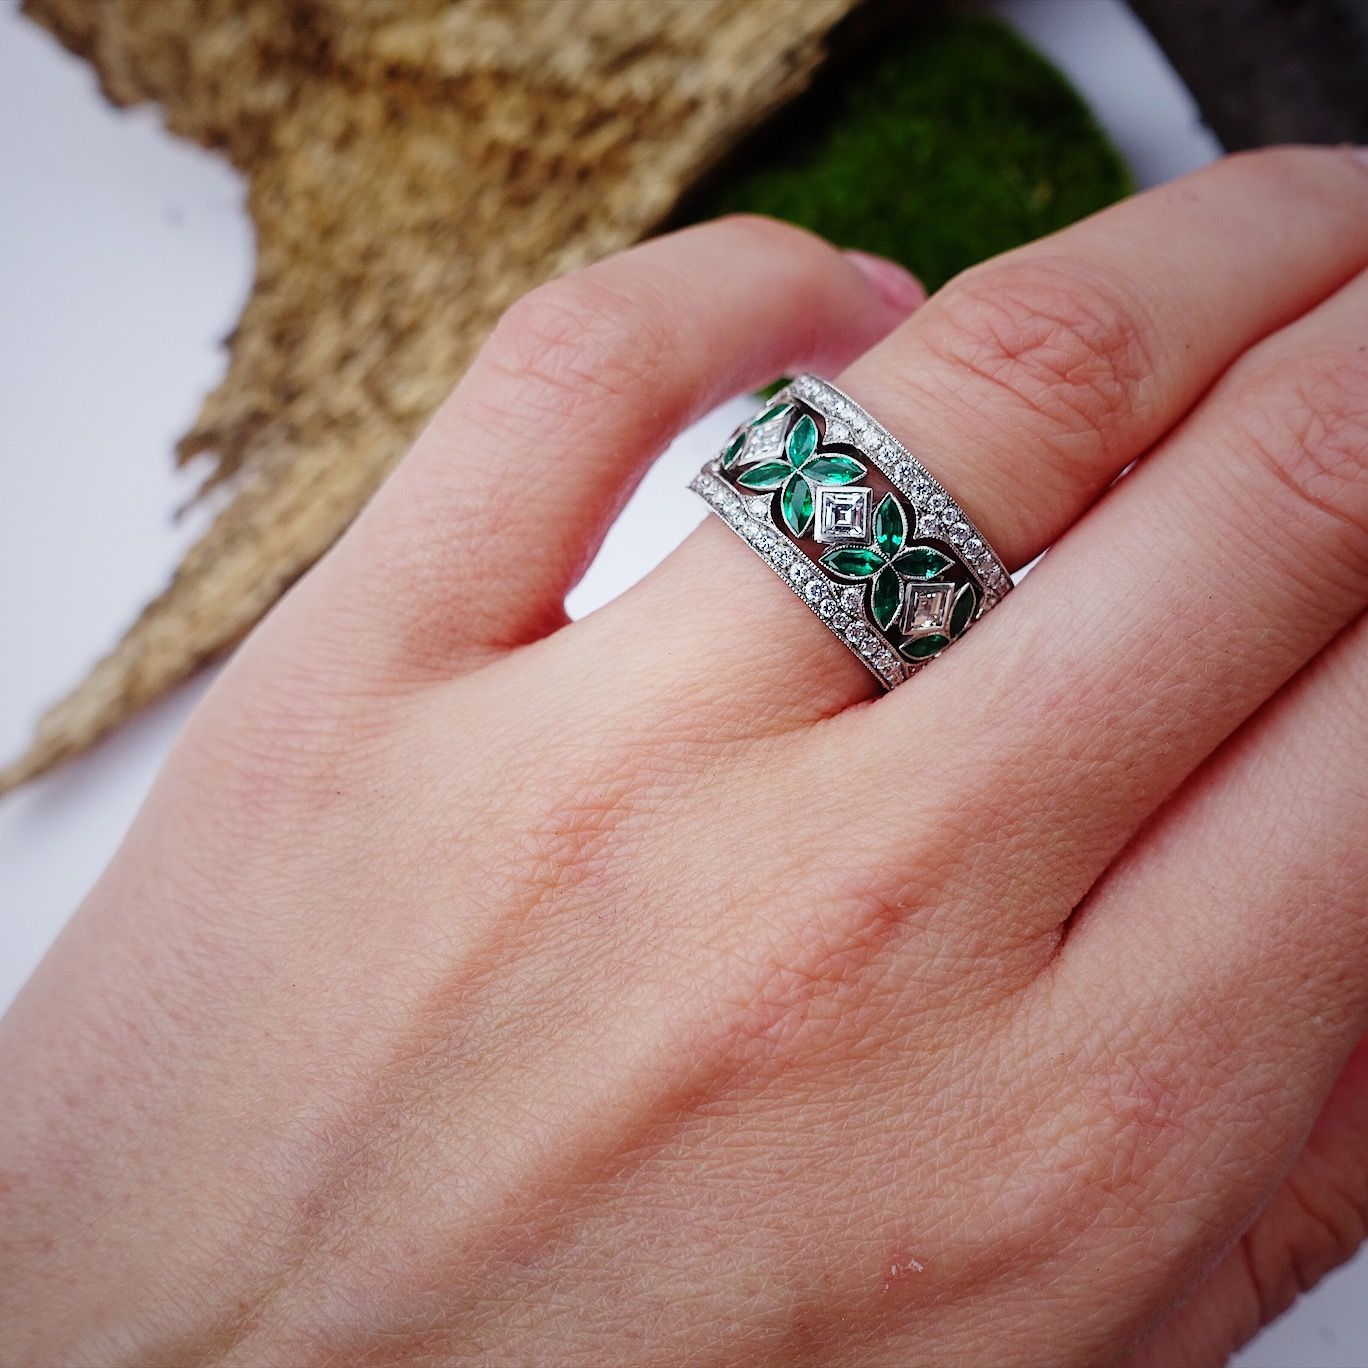 Pin by Bijoux De Lee on Handcrafted Jewelry | Pinterest | Band band ...